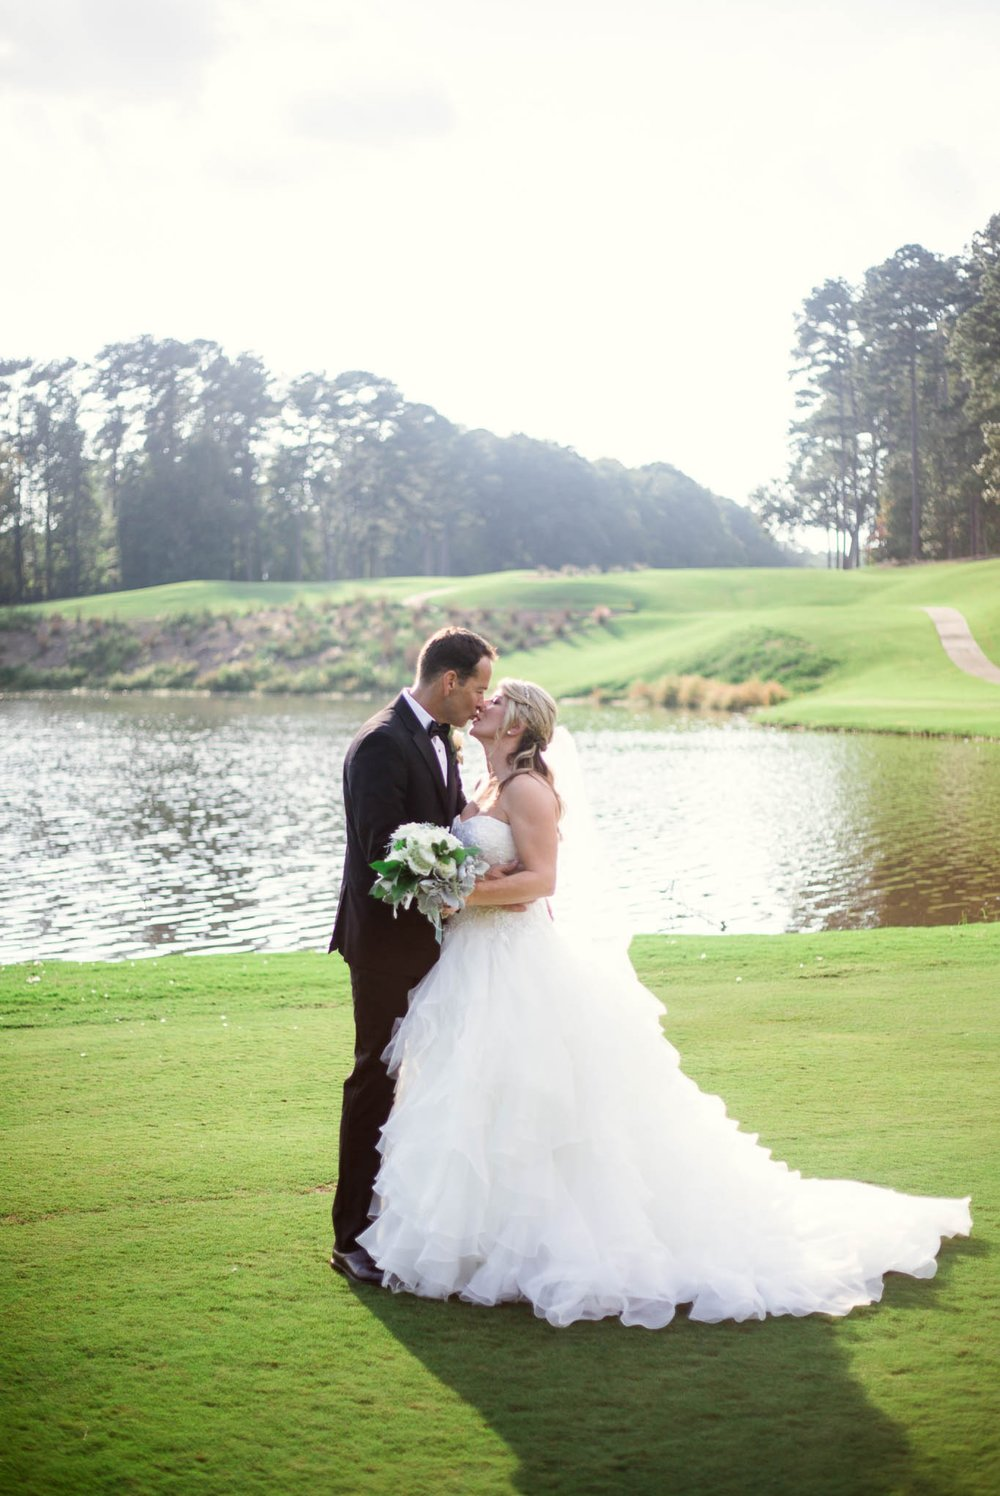 Bride and Groom Portraits - Dona + Doug - MacGregor Downs Country Club in Cary, NC - Raleigh Wedding Photographer